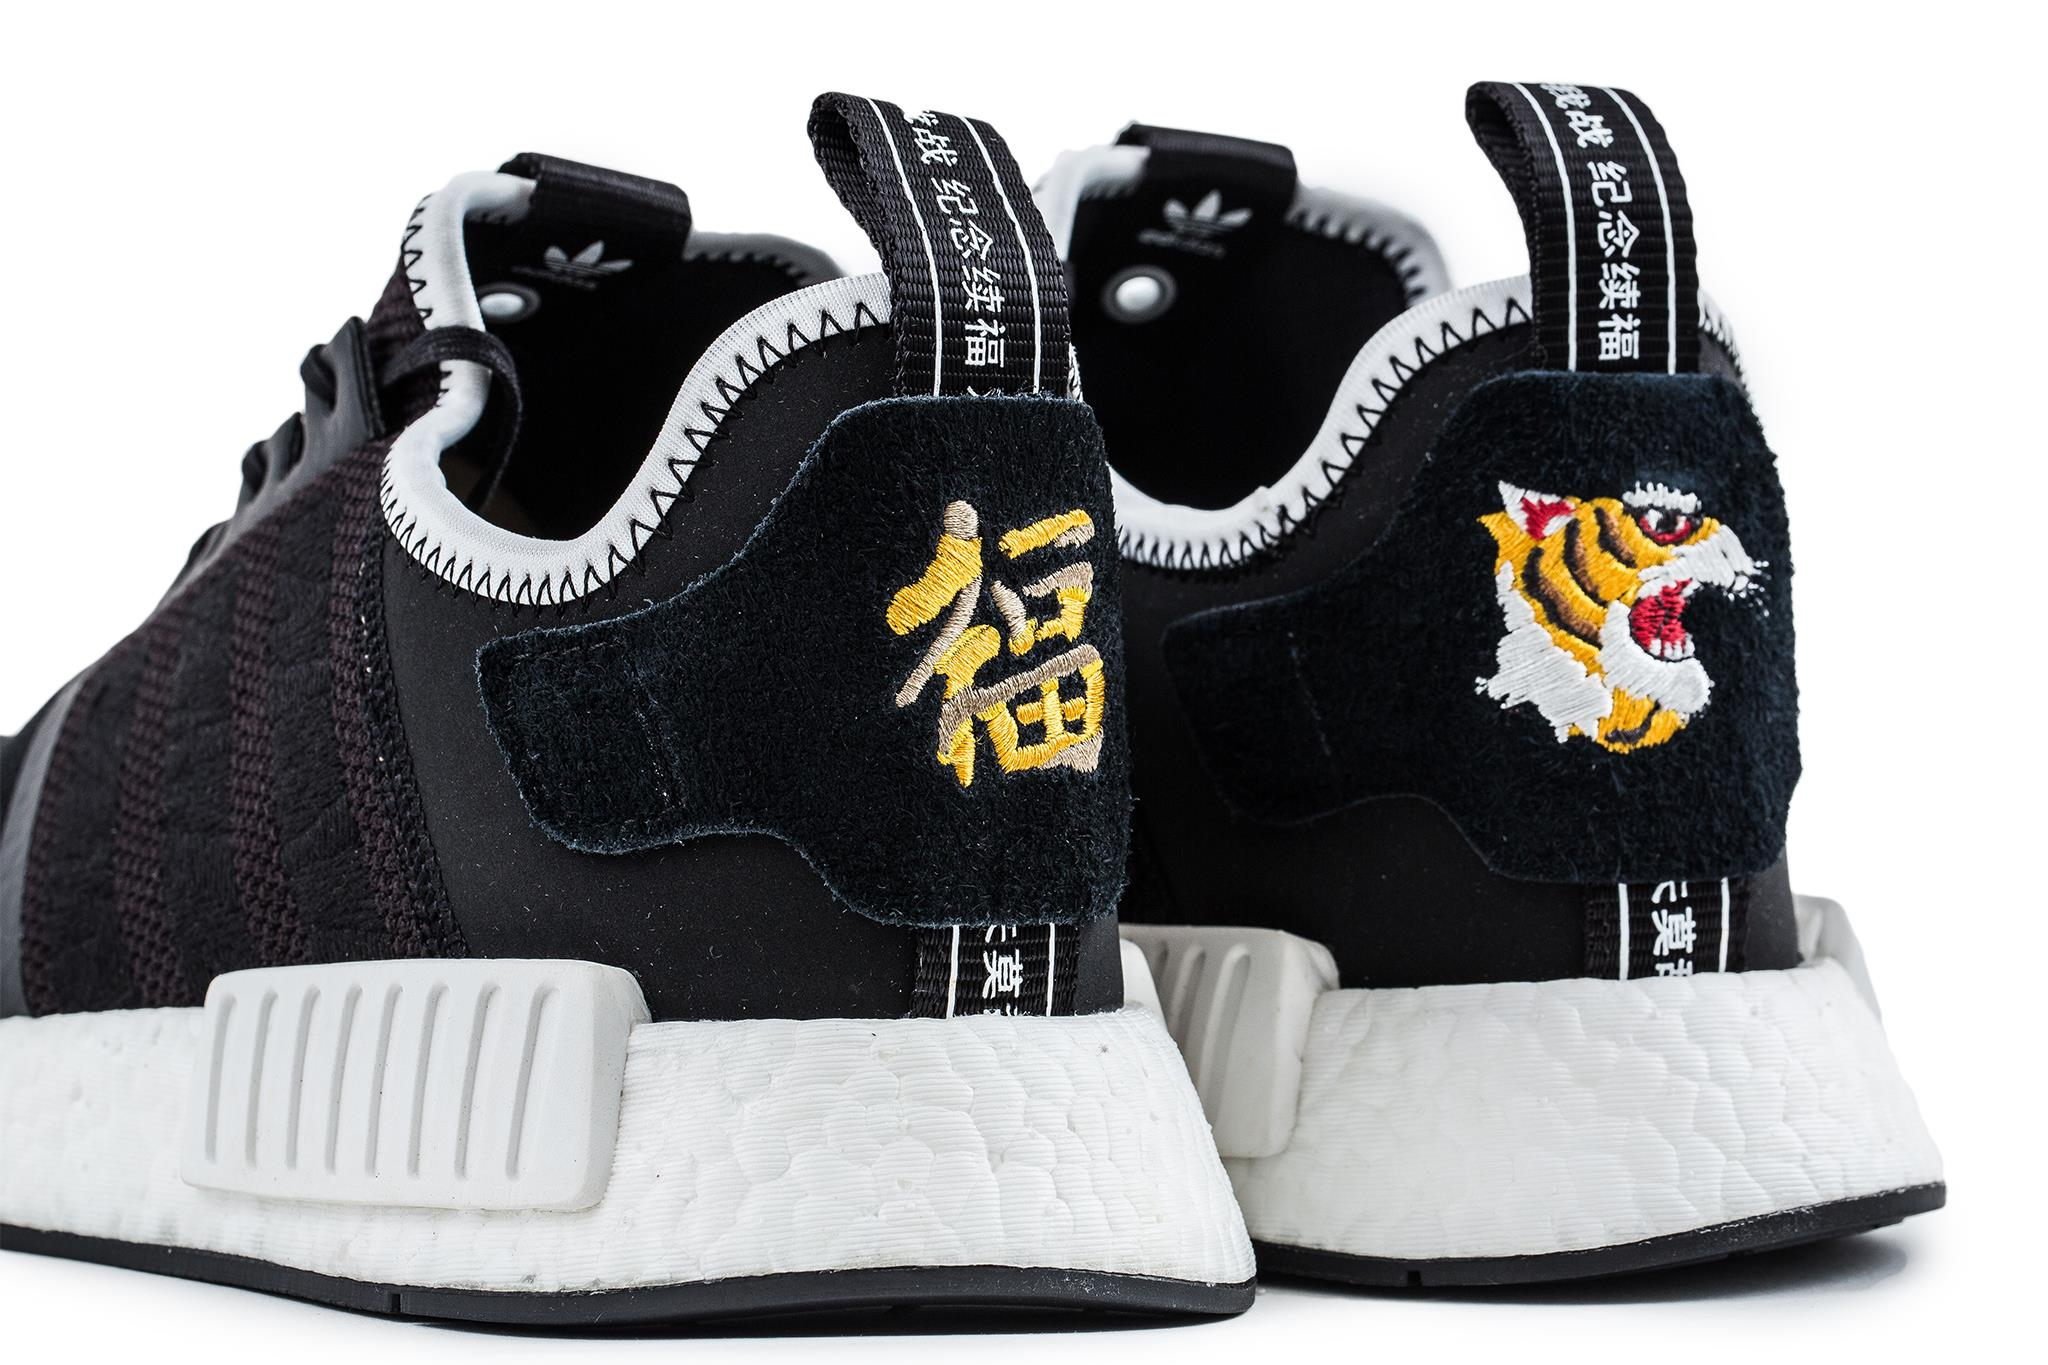 super popular d6bdc be15d INVINCIBLE x NEIGHBORHOOD x adidas CONSORTIUM NMD R1 (7 ...